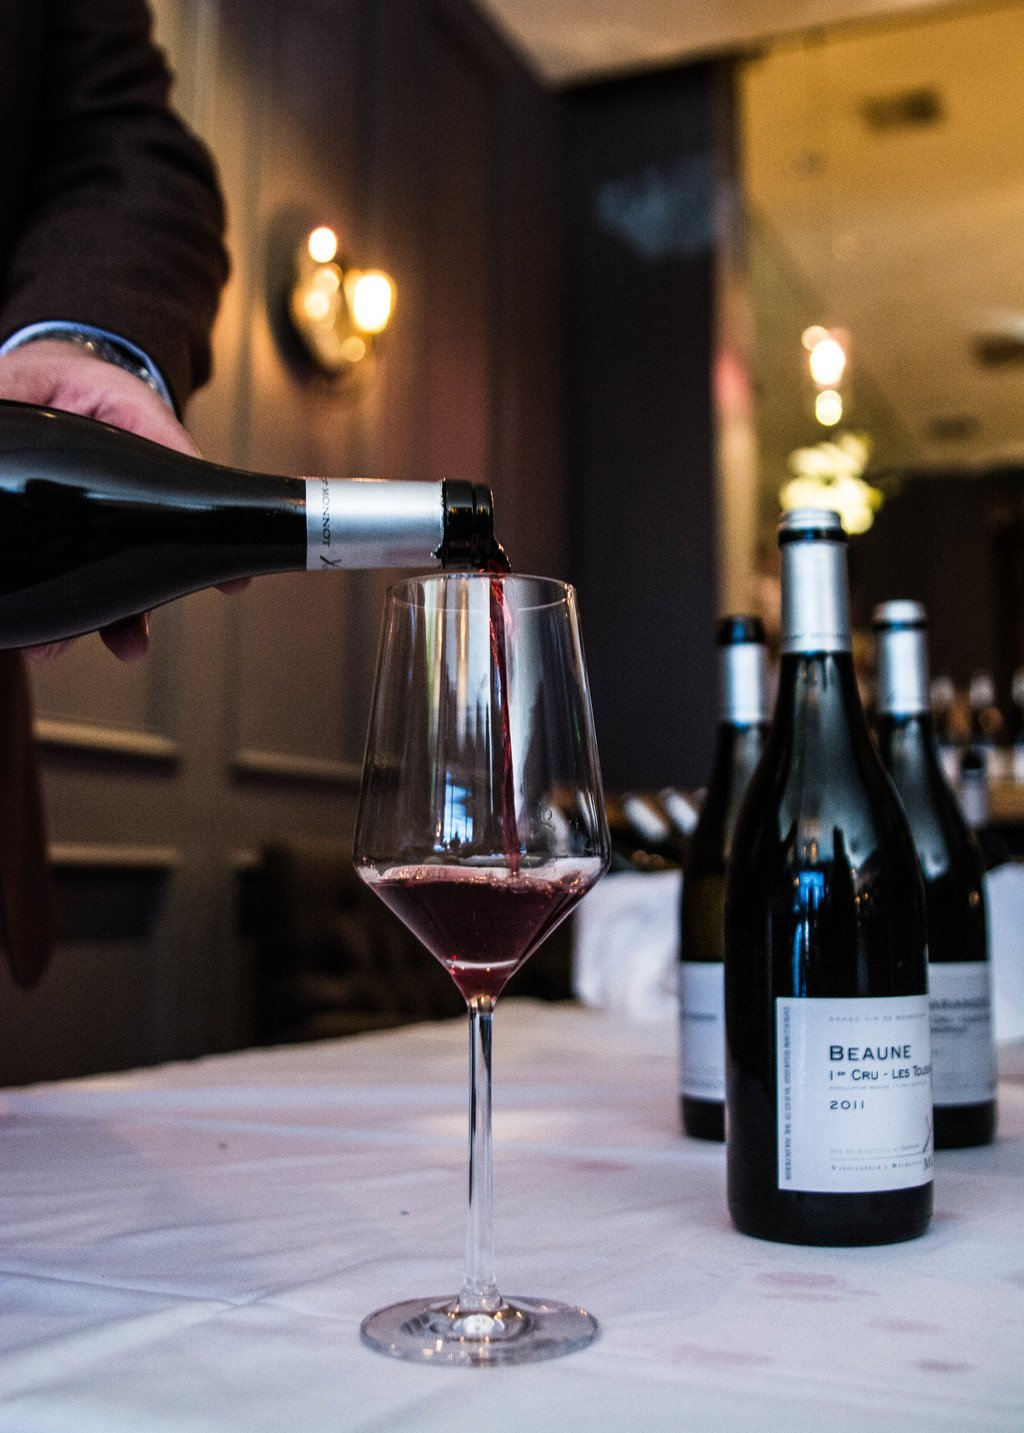 Xavier Monnot pours his Beaune 1er Touissants. Photography by Delmy Gooch.